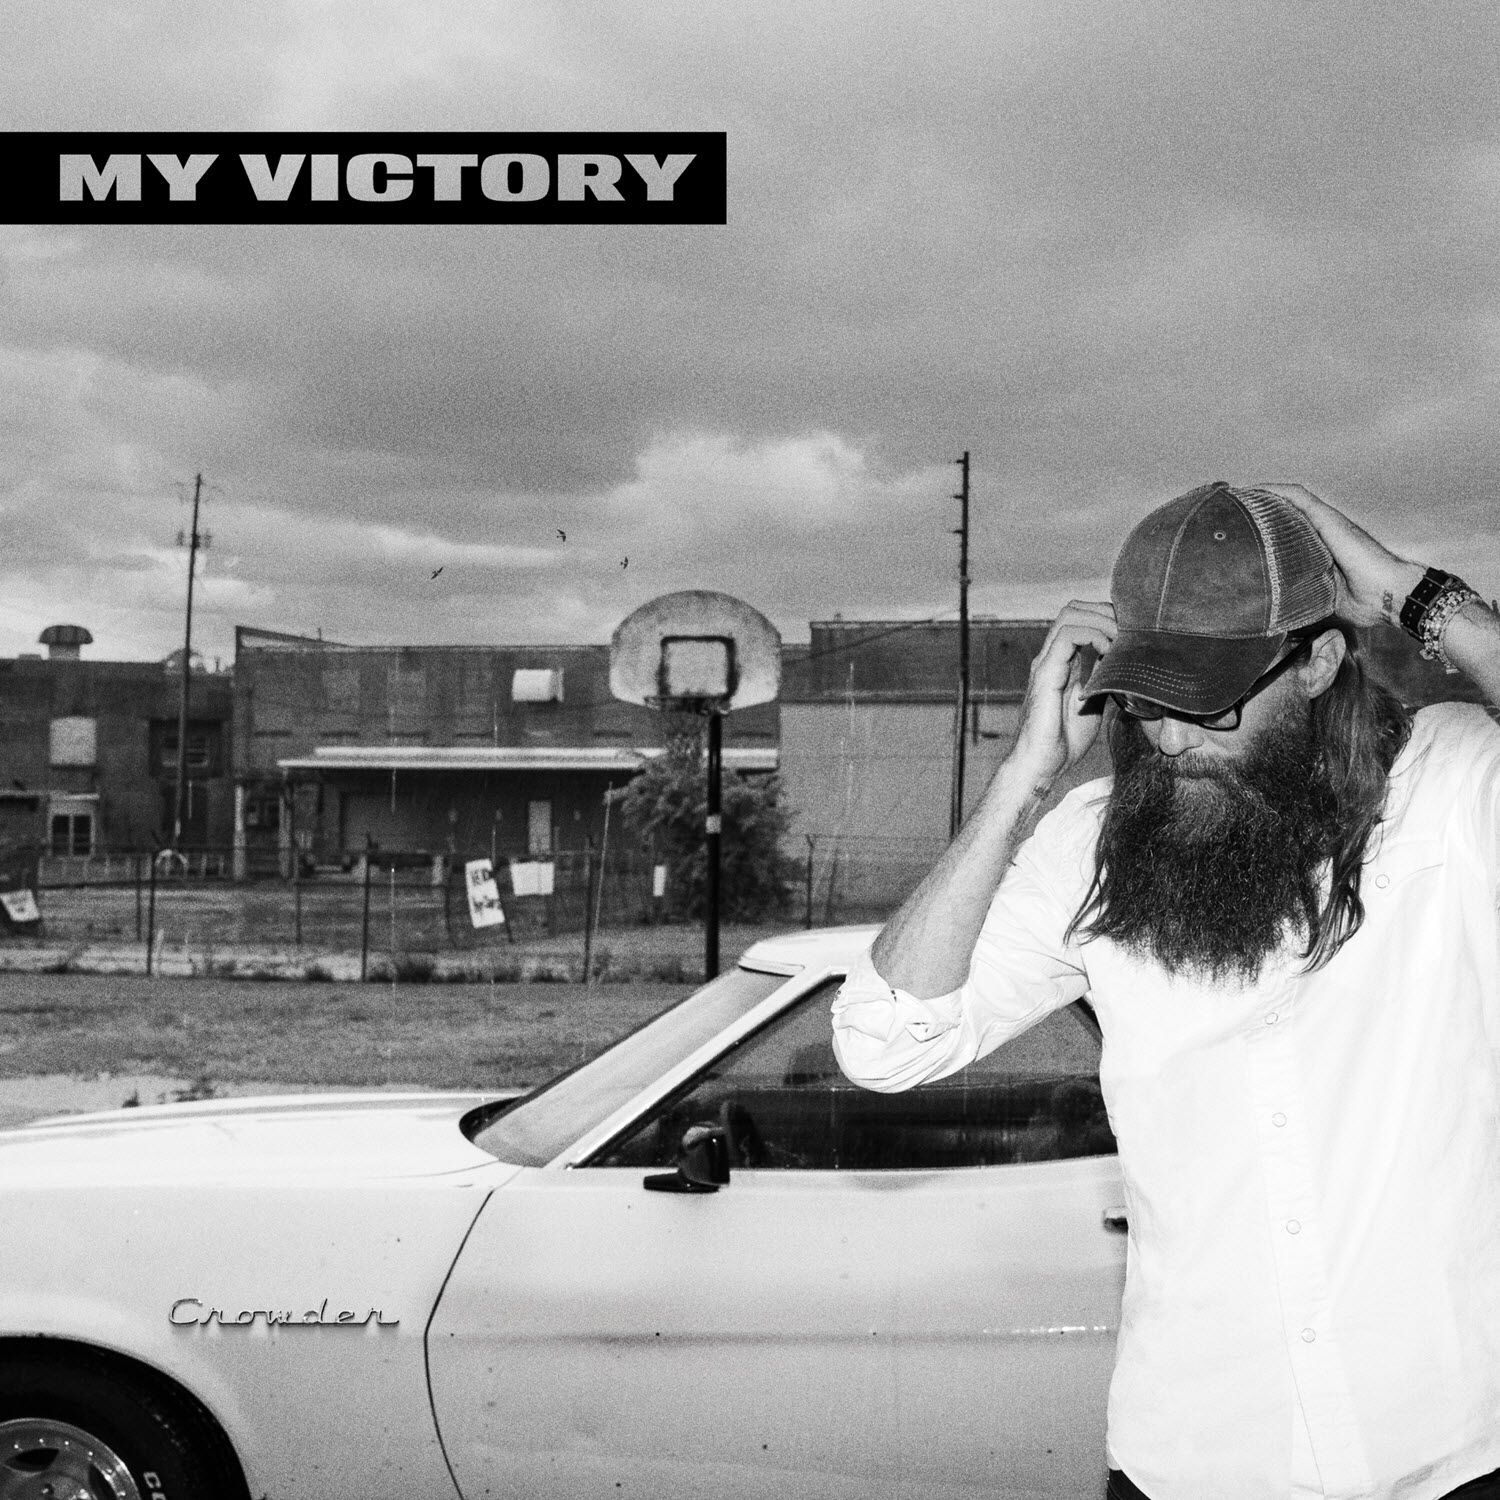 I'm listening to My Victory by Crowder in my Air1Radio